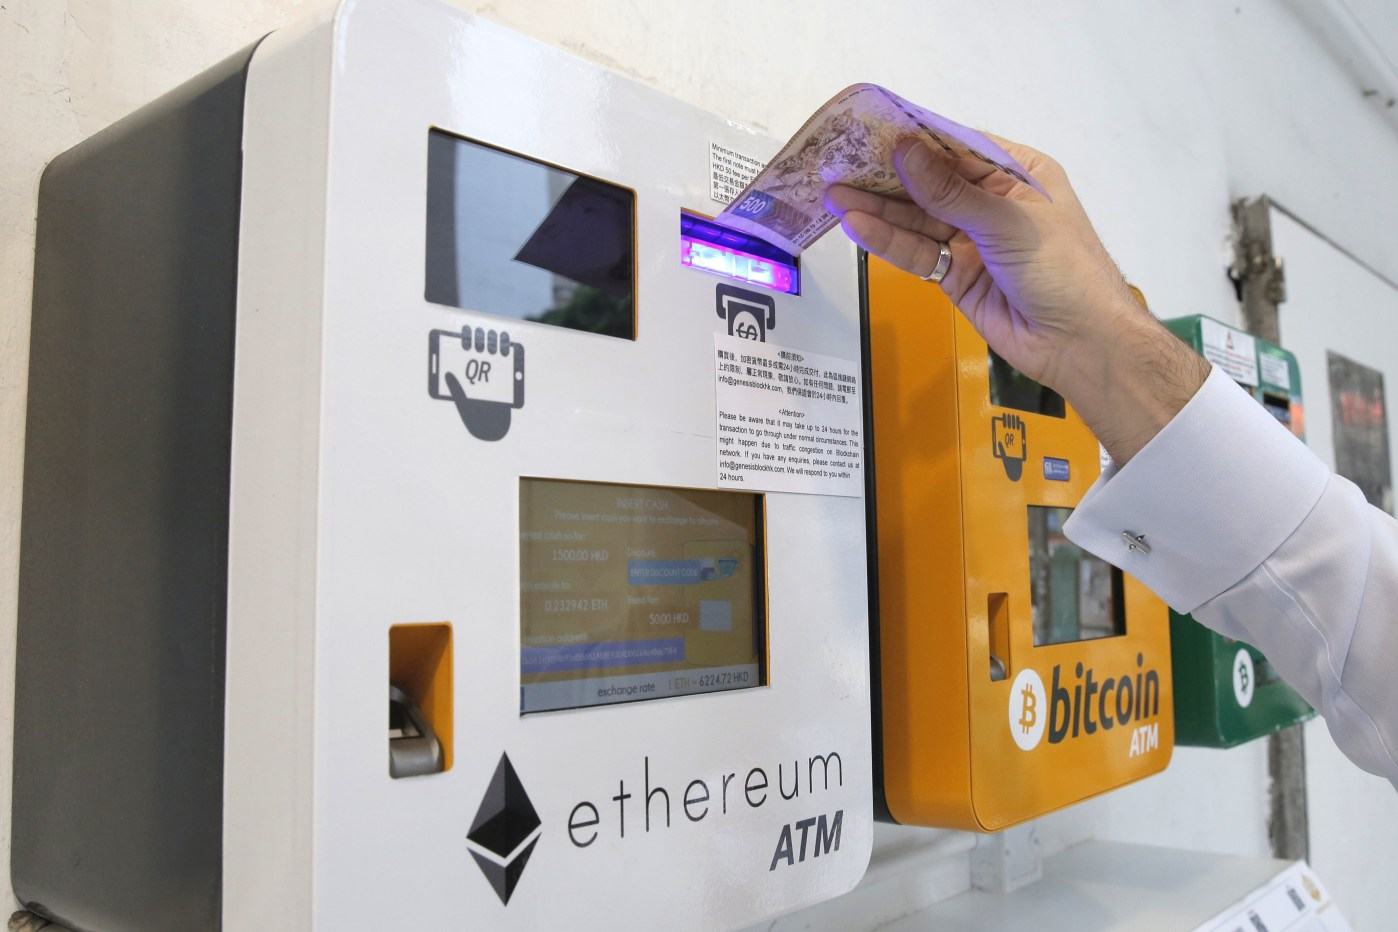 A man uses an Ethereum ATM, May 11, 2018. (AP Photo/Kin Cheung)